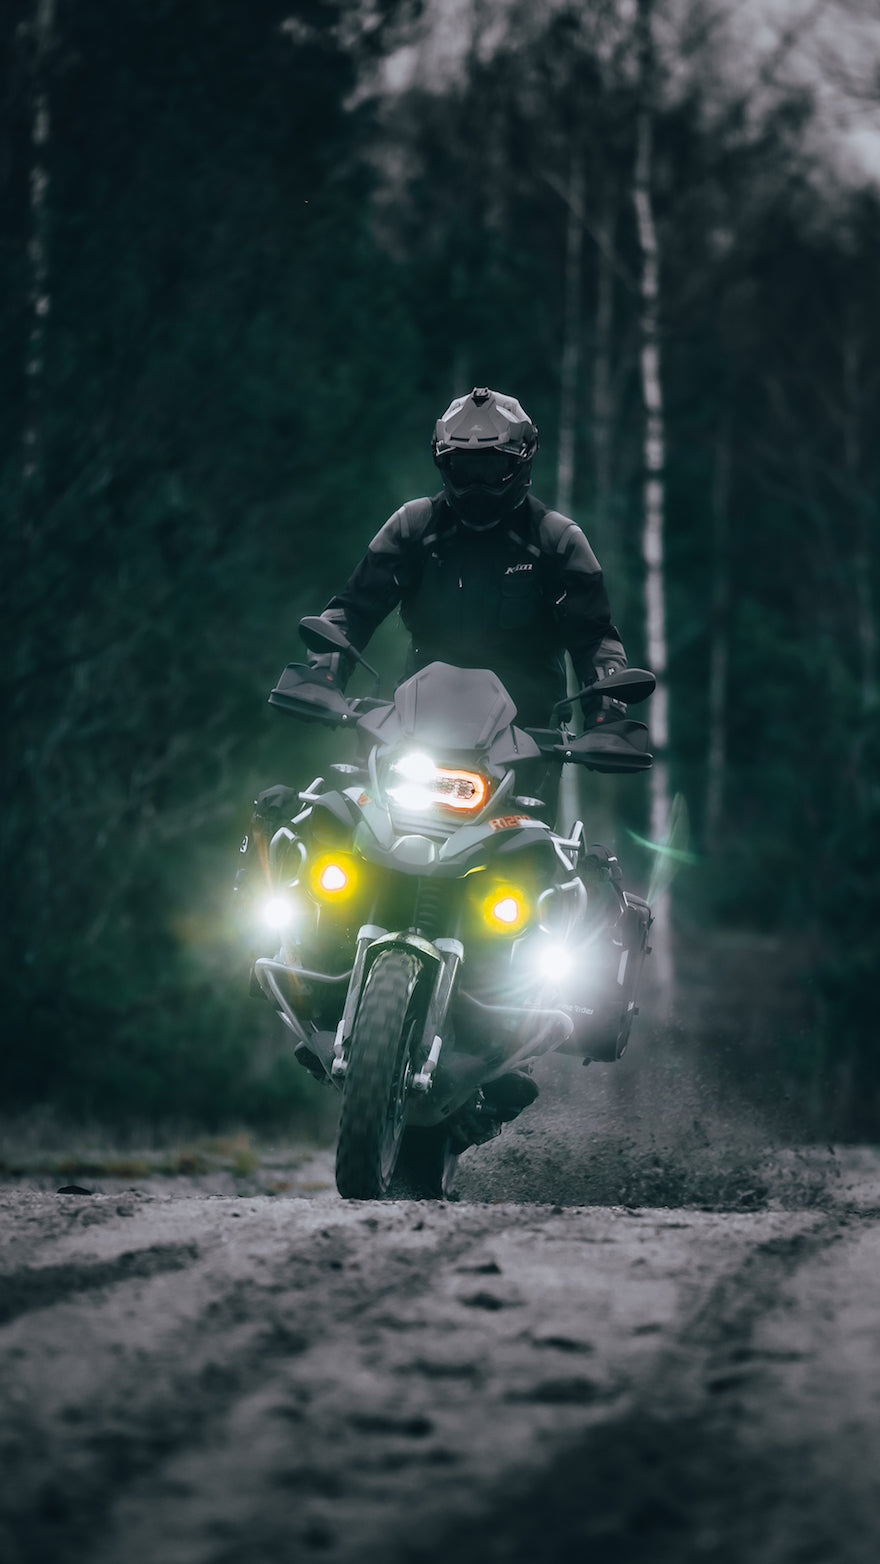 ADV motorcycle riding in the UK